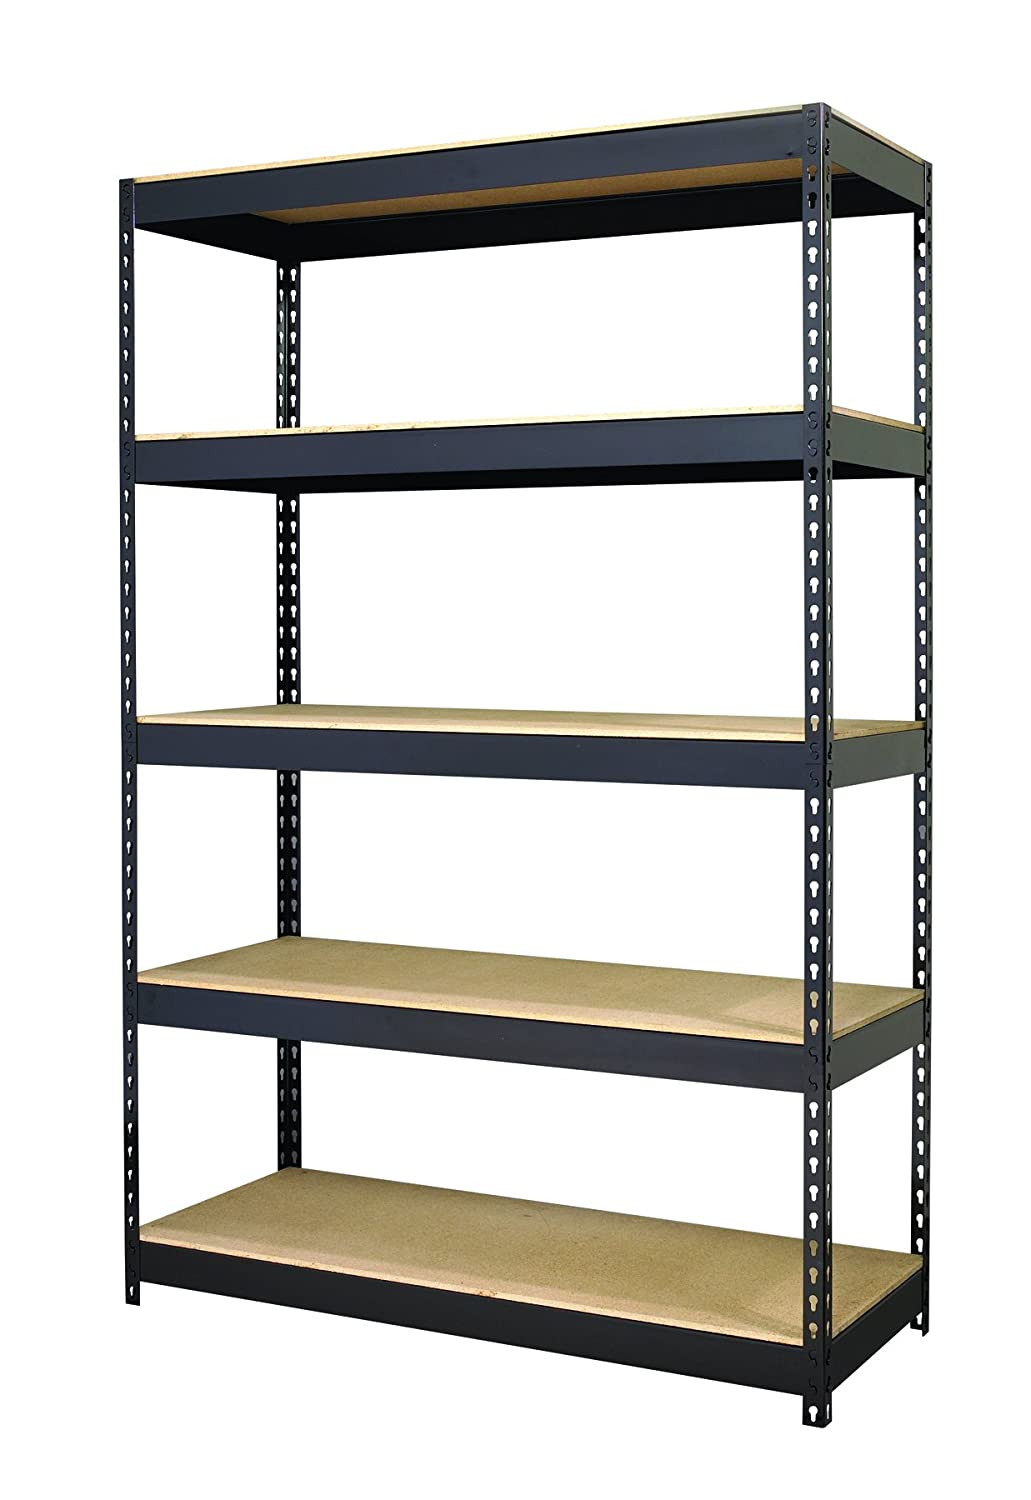 amazoncom hirsh industries office dimensions riveted steel shelving 5 shelf unit 48 w x 18 d x 72 h black kitchen dining - Industrial Metal Shelving